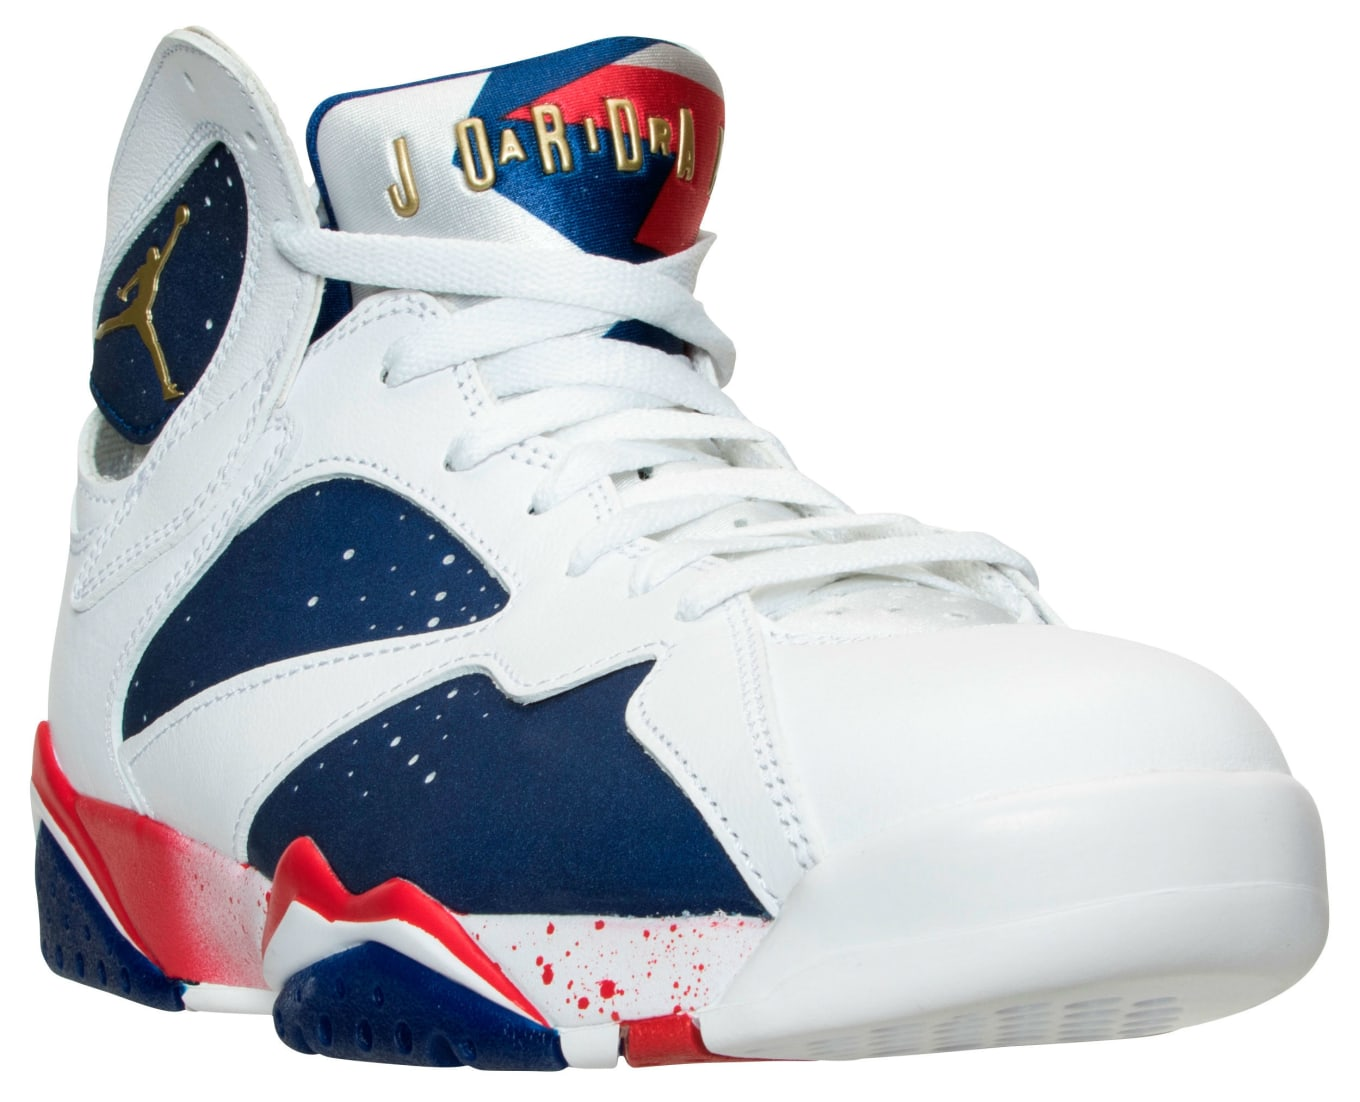 new styles 90ddd 98994 Air Jordan 7 Olympic Tinker Alternate Release Date 304775-123